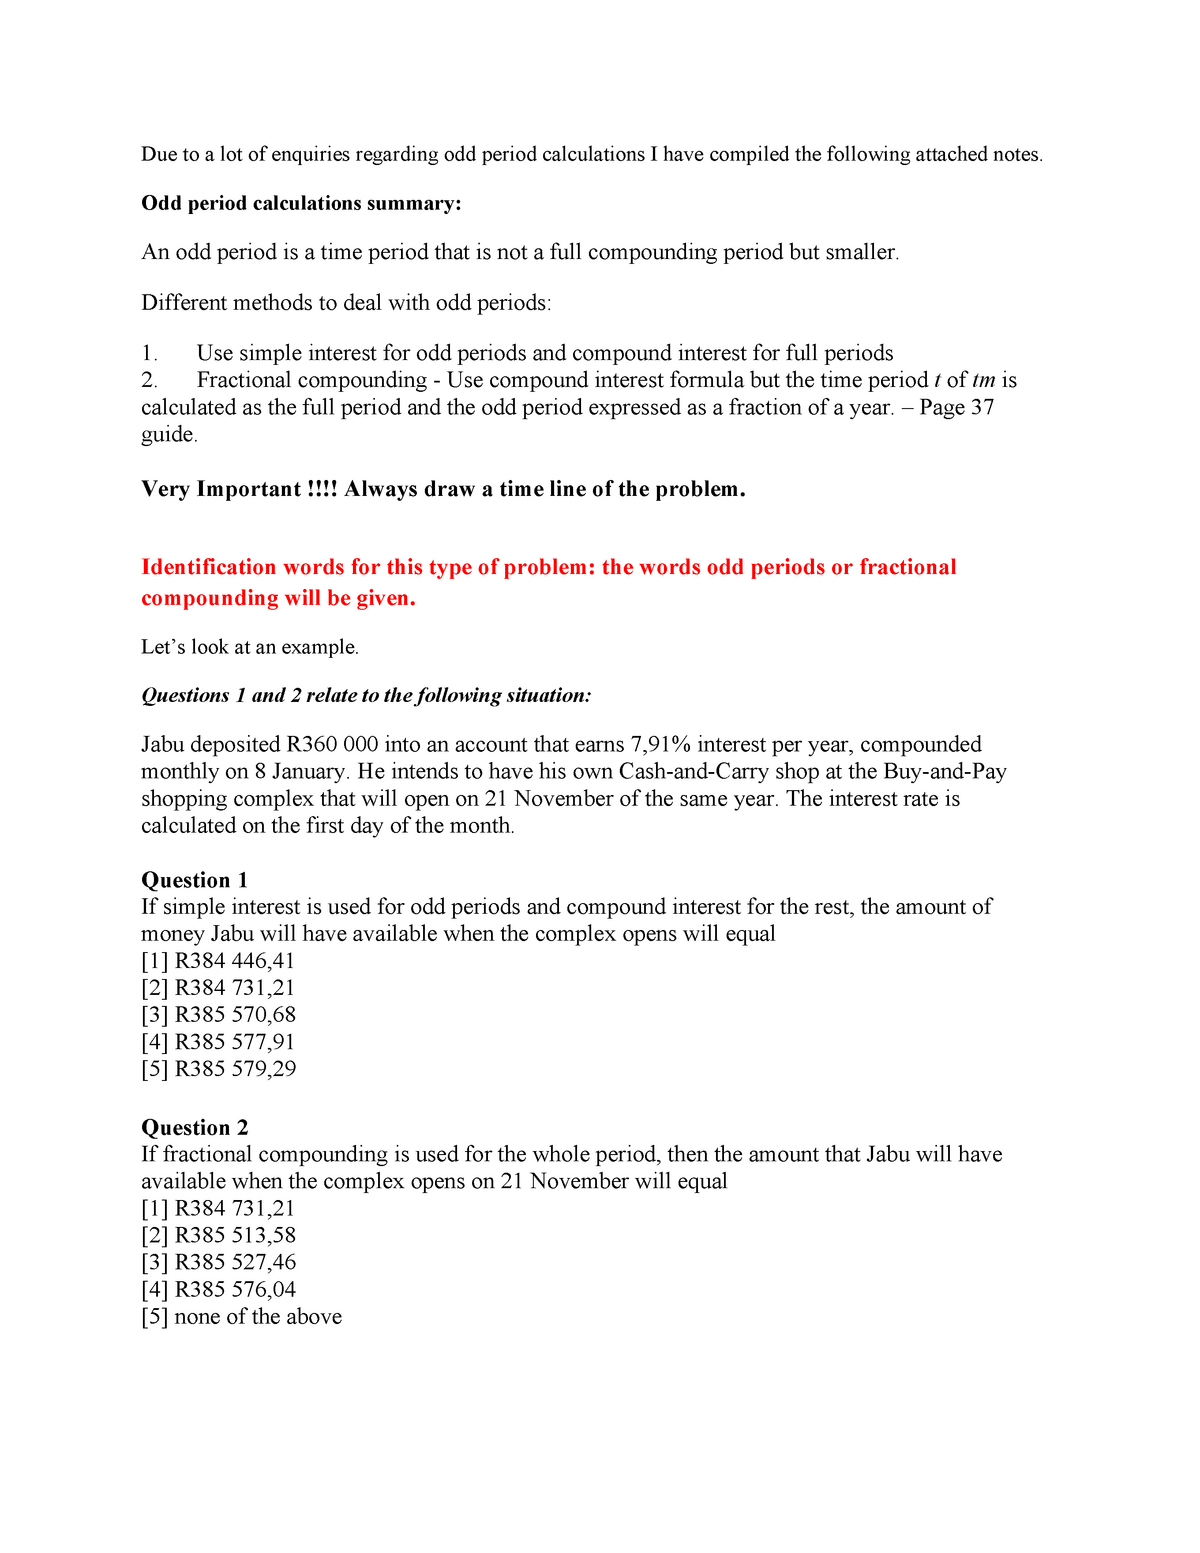 Lecture notes - Introductory Financial Mathematics - Odd